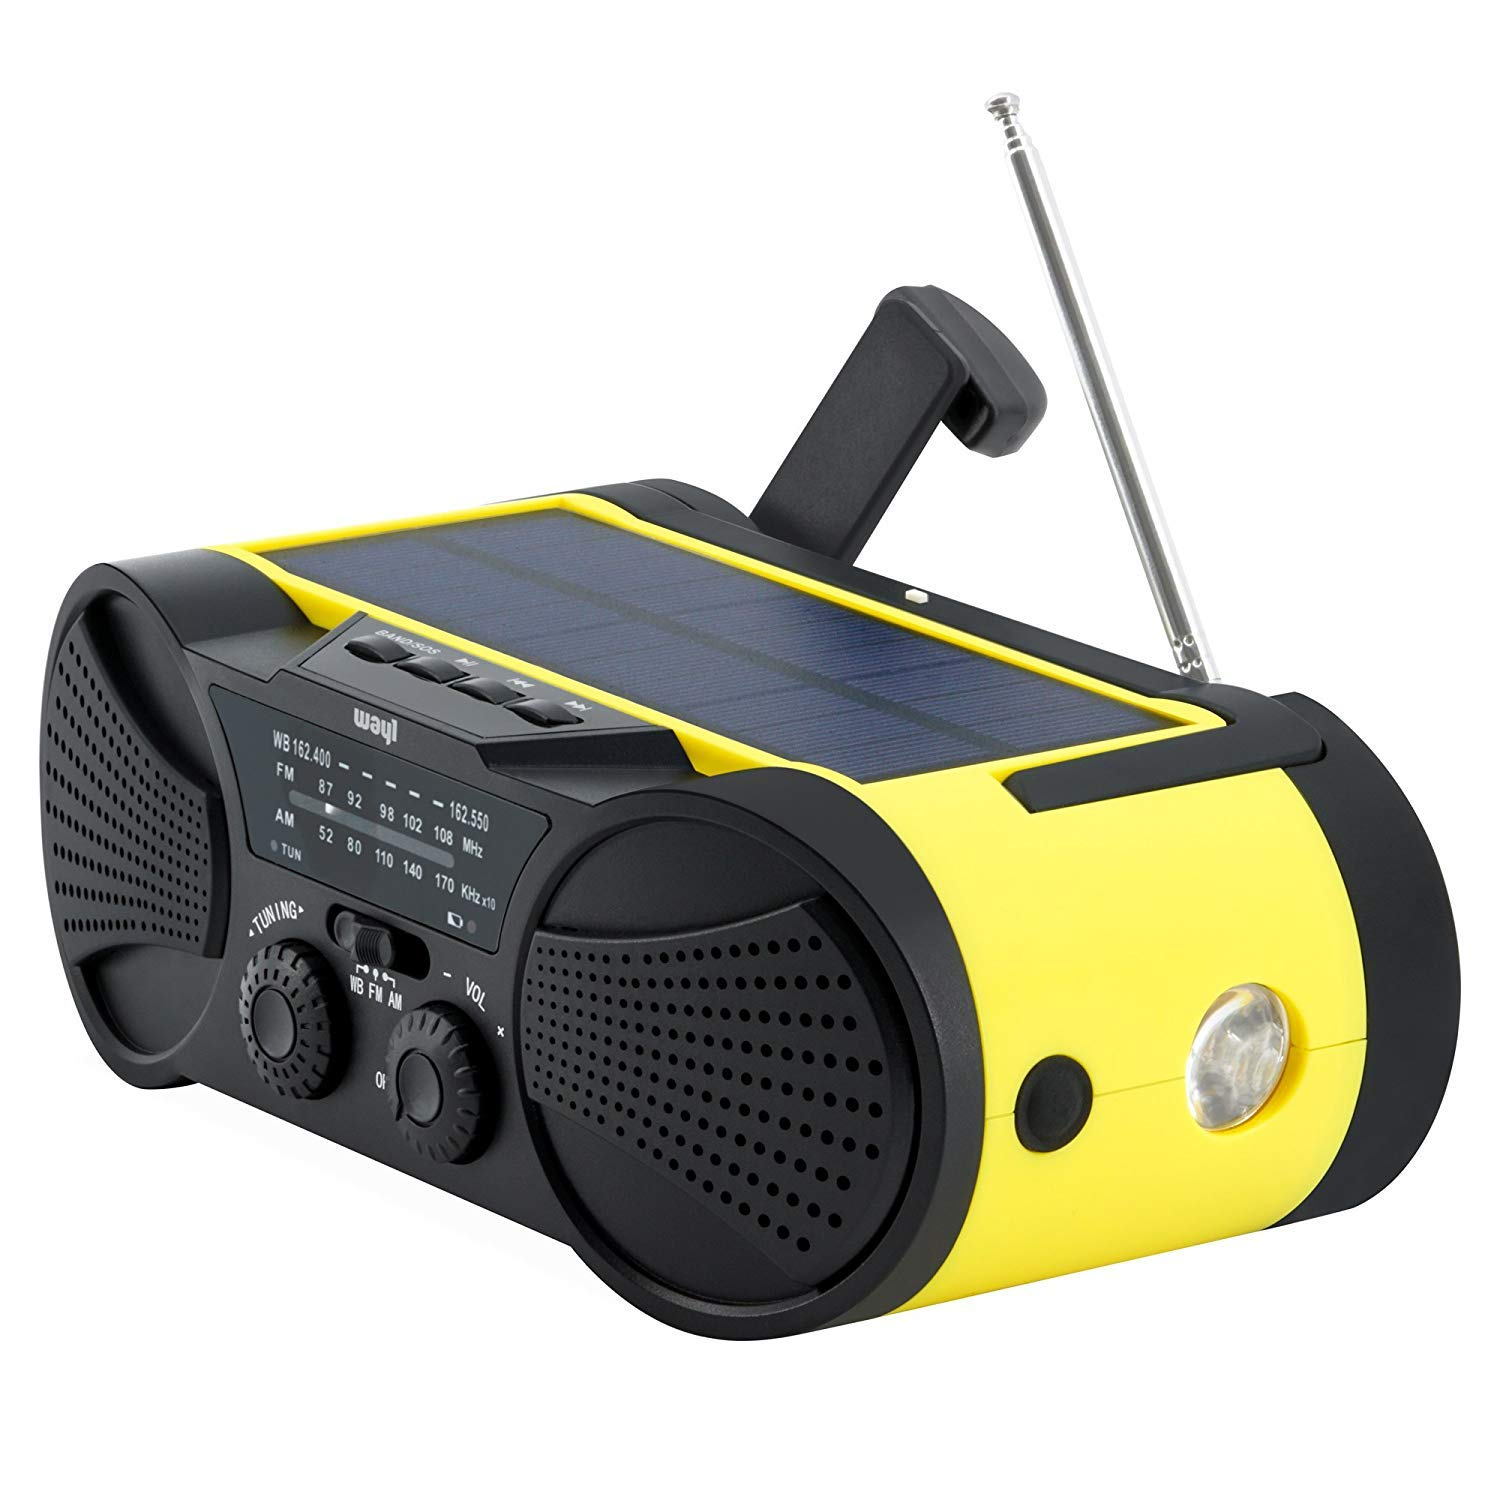 Emergency Weather Radio 4000mAh - Portable, Solar Powered, Hand Crank, AM FM NOAA Weather Stations, USB Cell Phone Charger, SOS Alarm, LED Flashlight & Reading Light Radio - Buzz4000 by Wayl